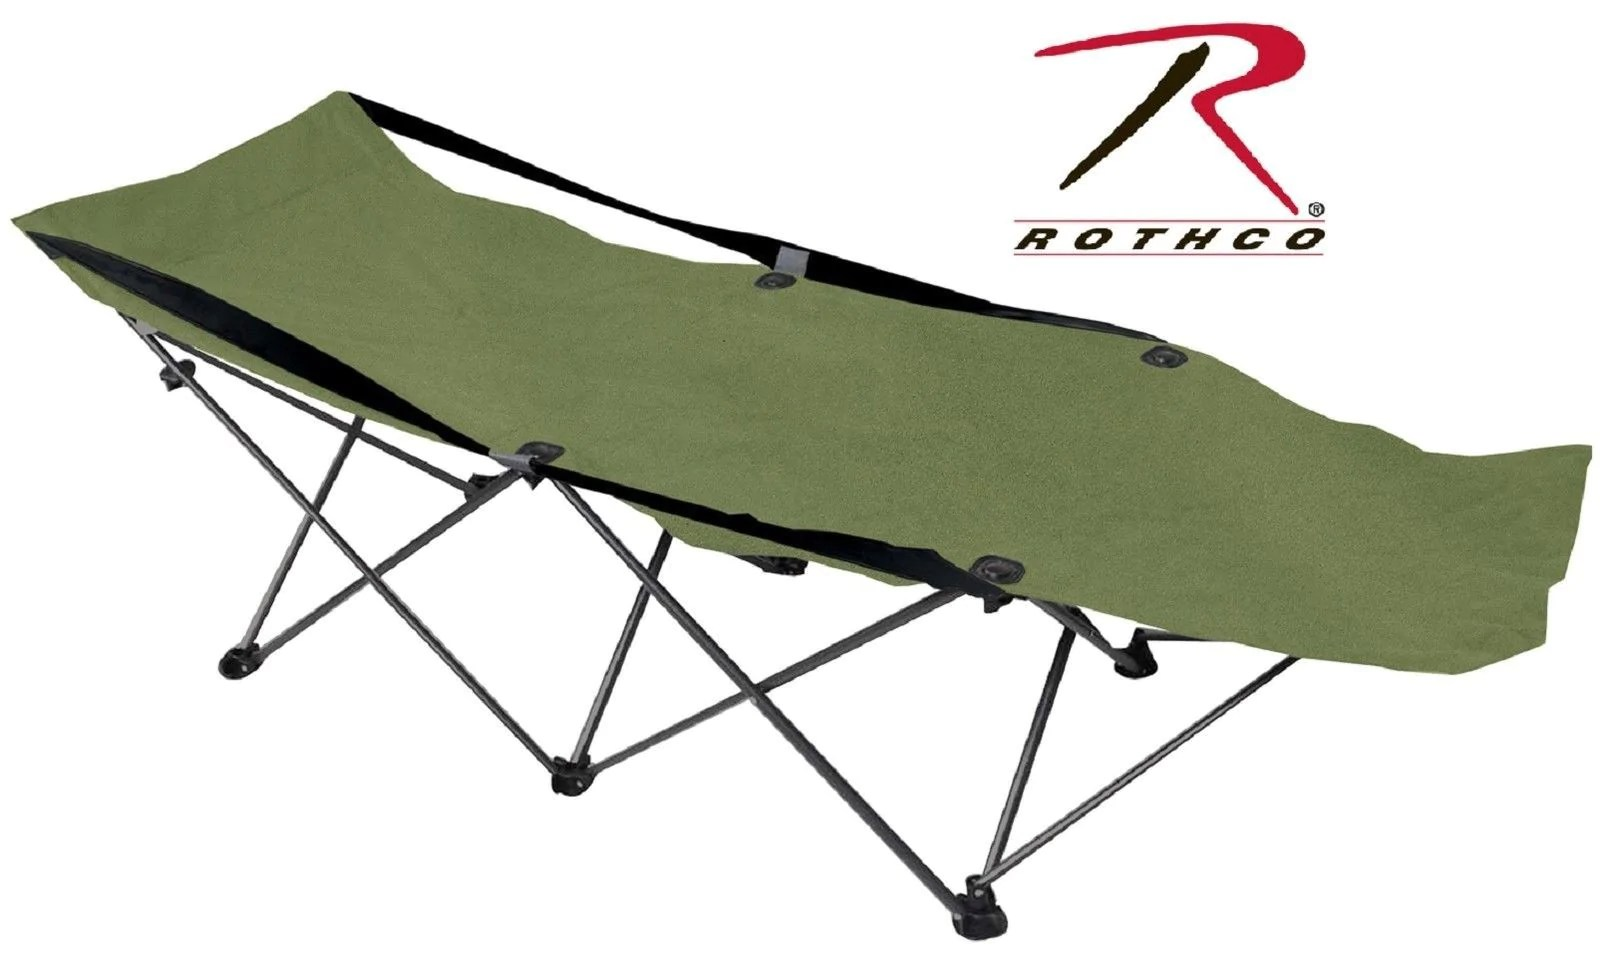 Folding Sleeping Chair Rothco Deluxe Folding Camping Cot 74